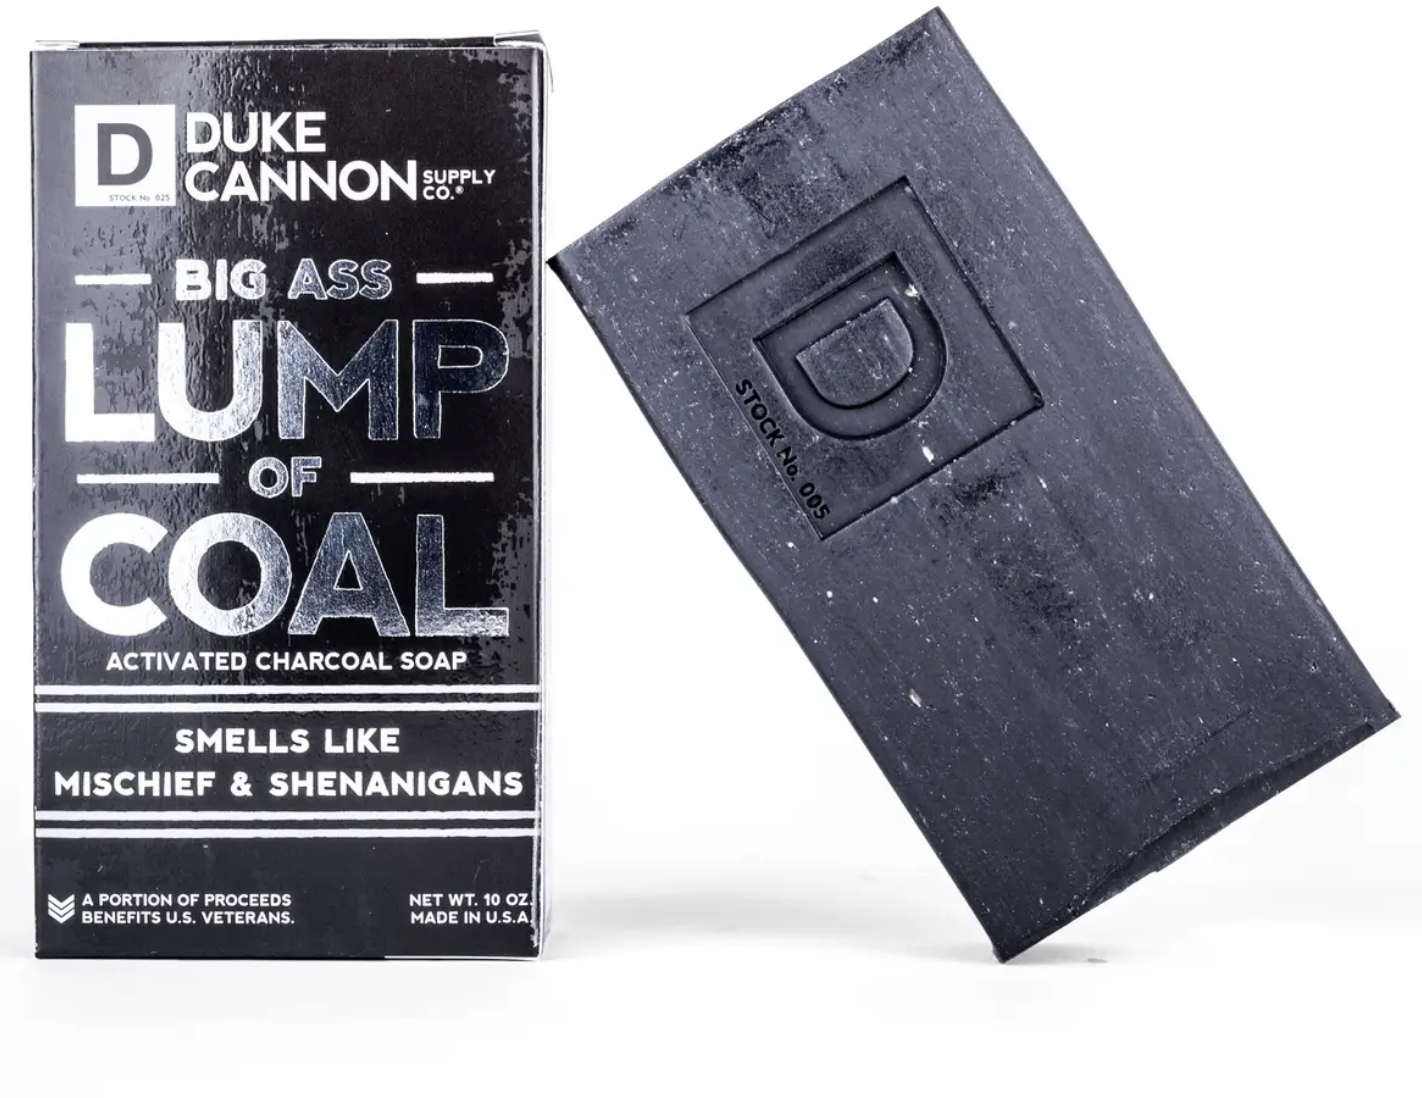 Duke Cannon Big Ass lump of Coal